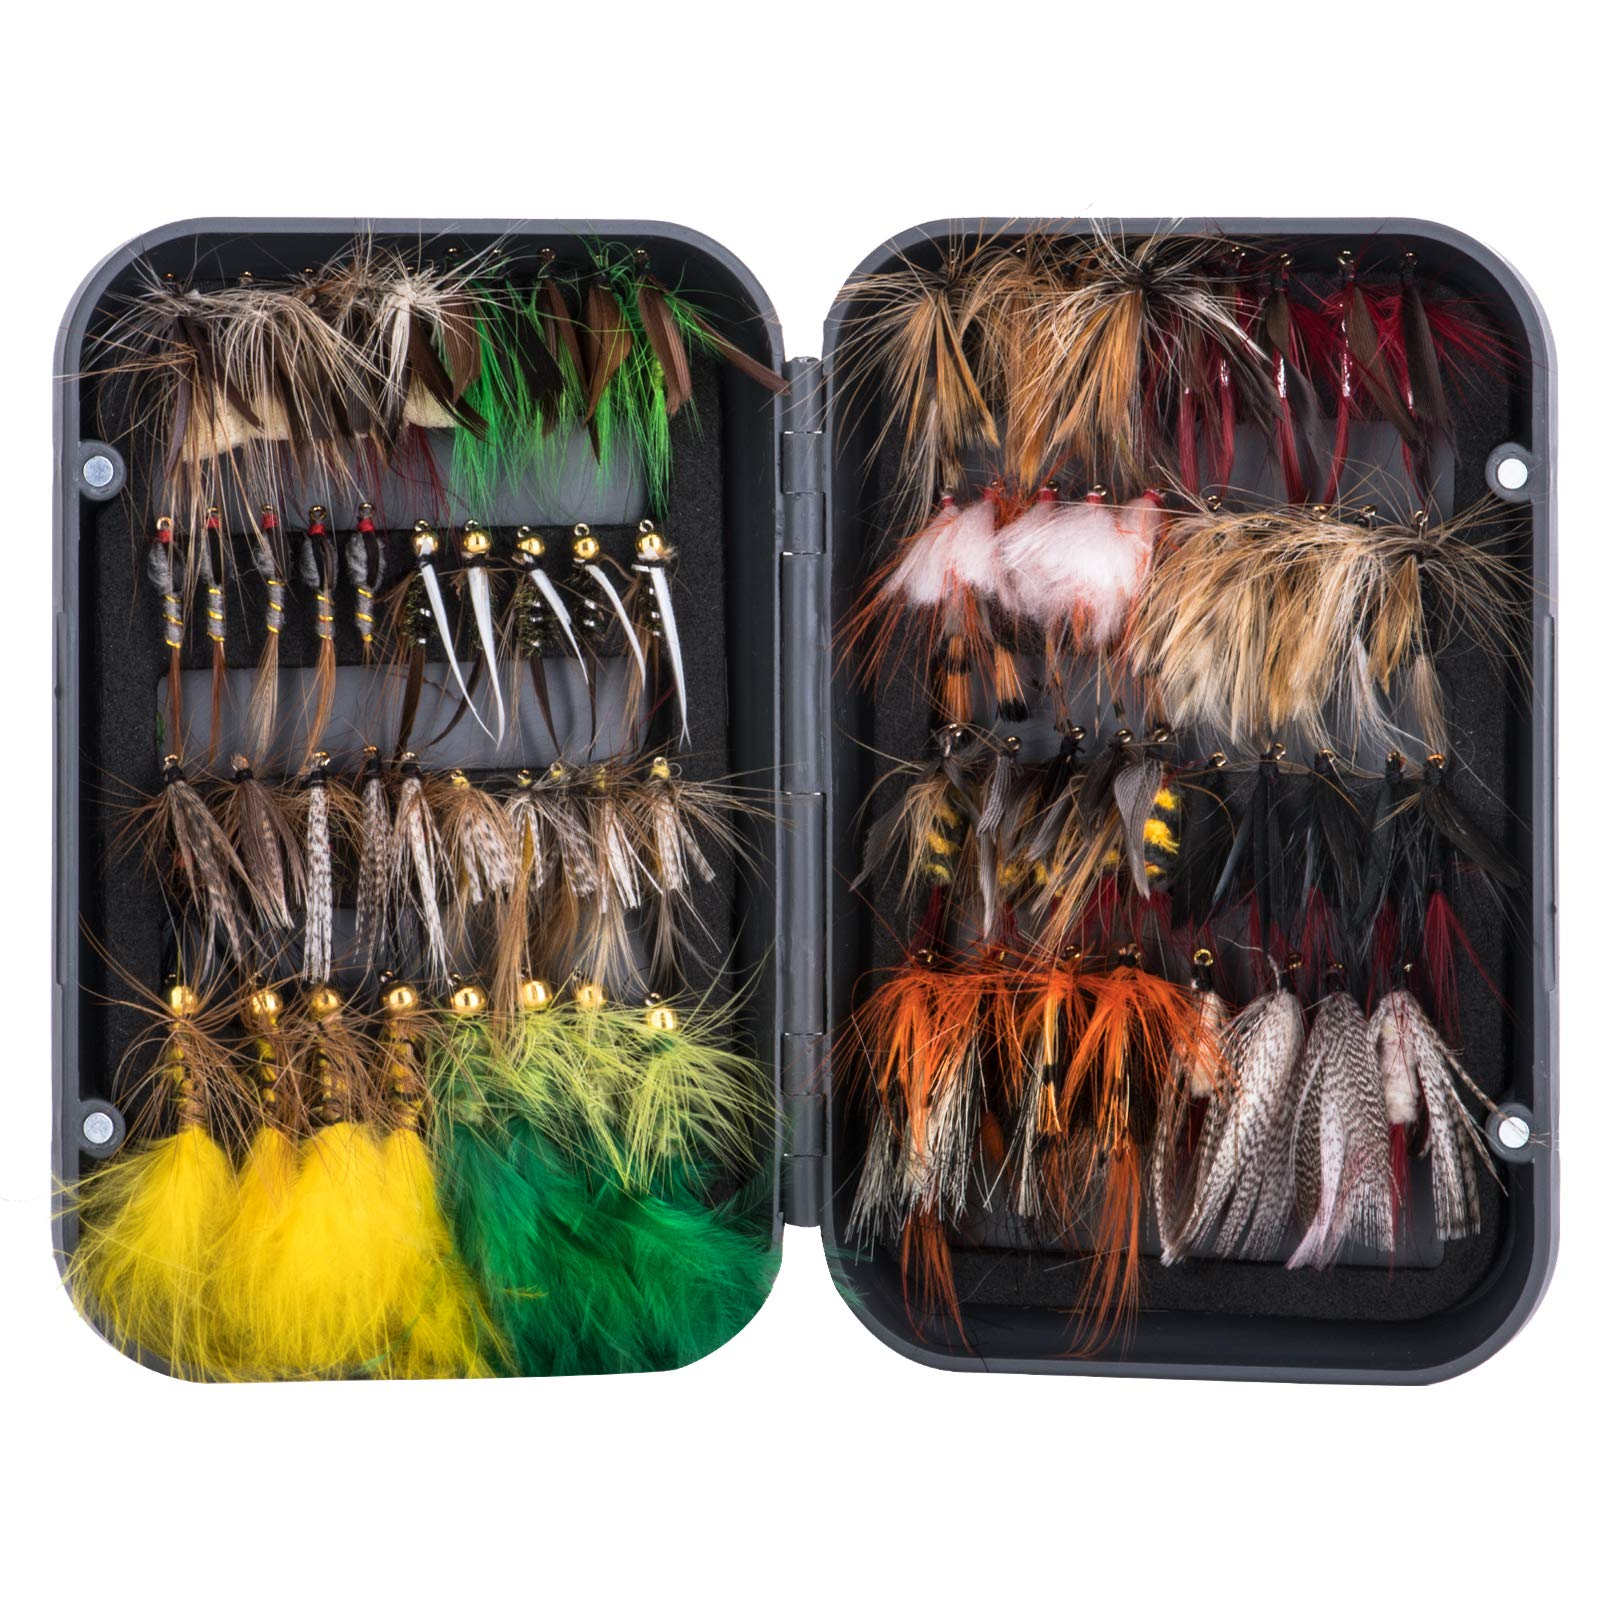 Goture Fly Fishing Flies Kit - 76pcs/100pcs Fly Fishing Lures with Fly Fishing Box - Fly Fishing Assortment Kit for Bass Trout Salmon Fishing - Dry Flies Wet Flies Streamers Nymphs